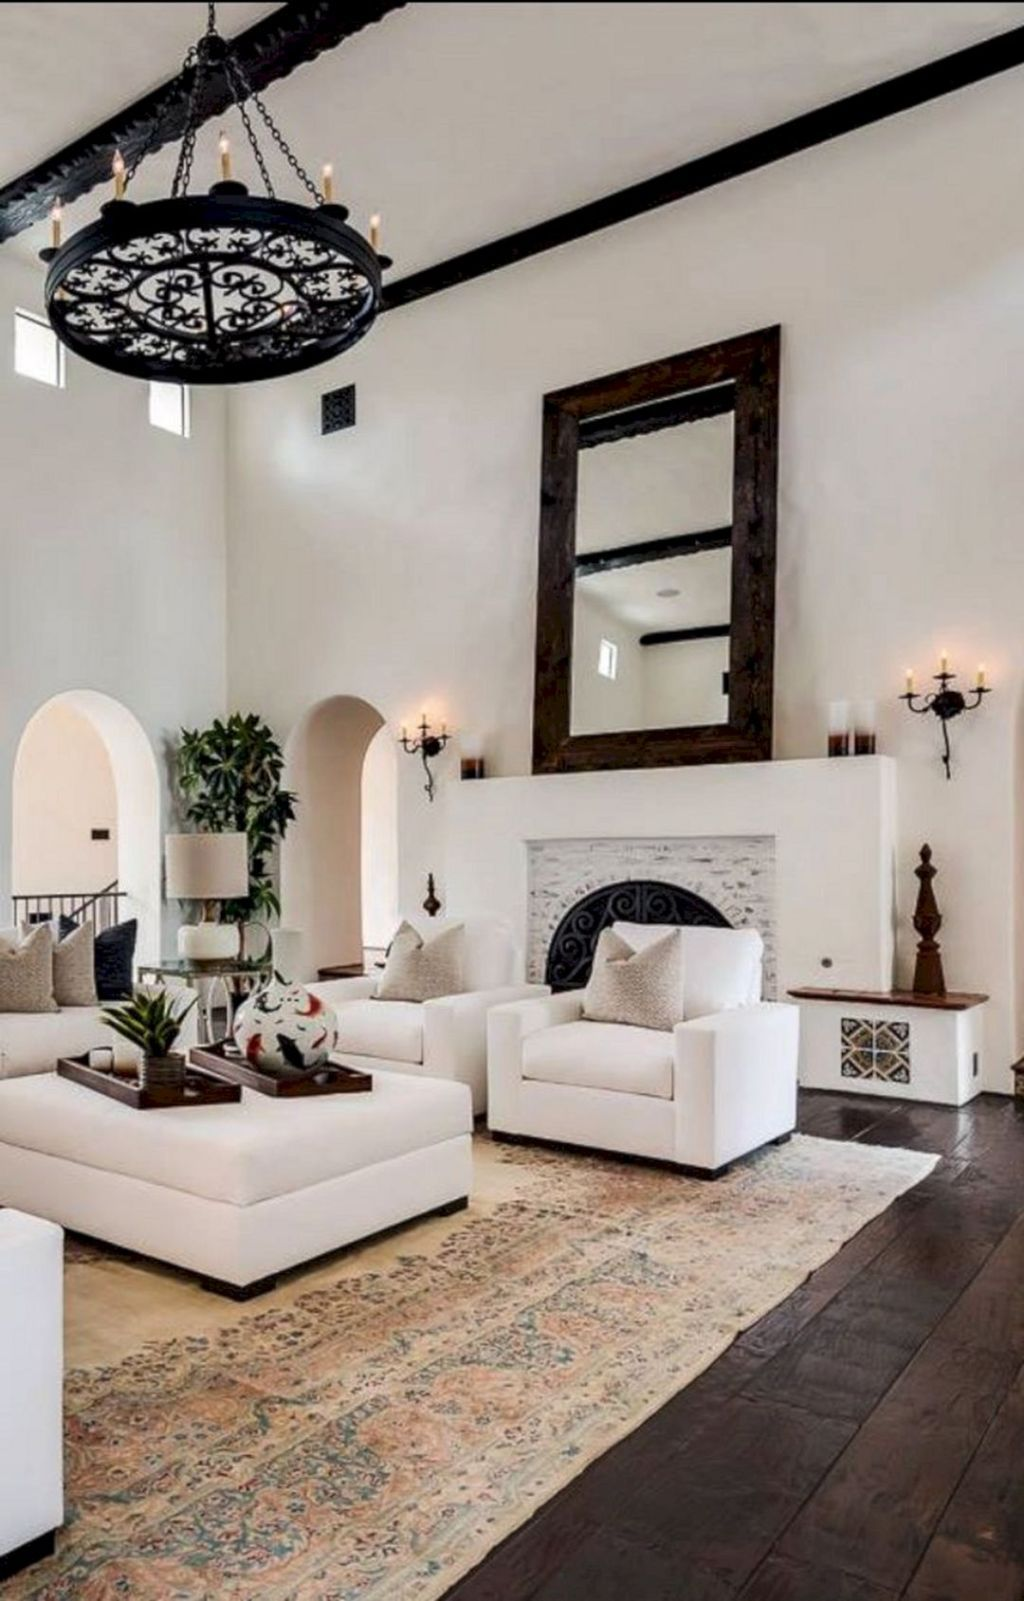 8 Best And Amazing Spanish Style Bedroom Furniture Design